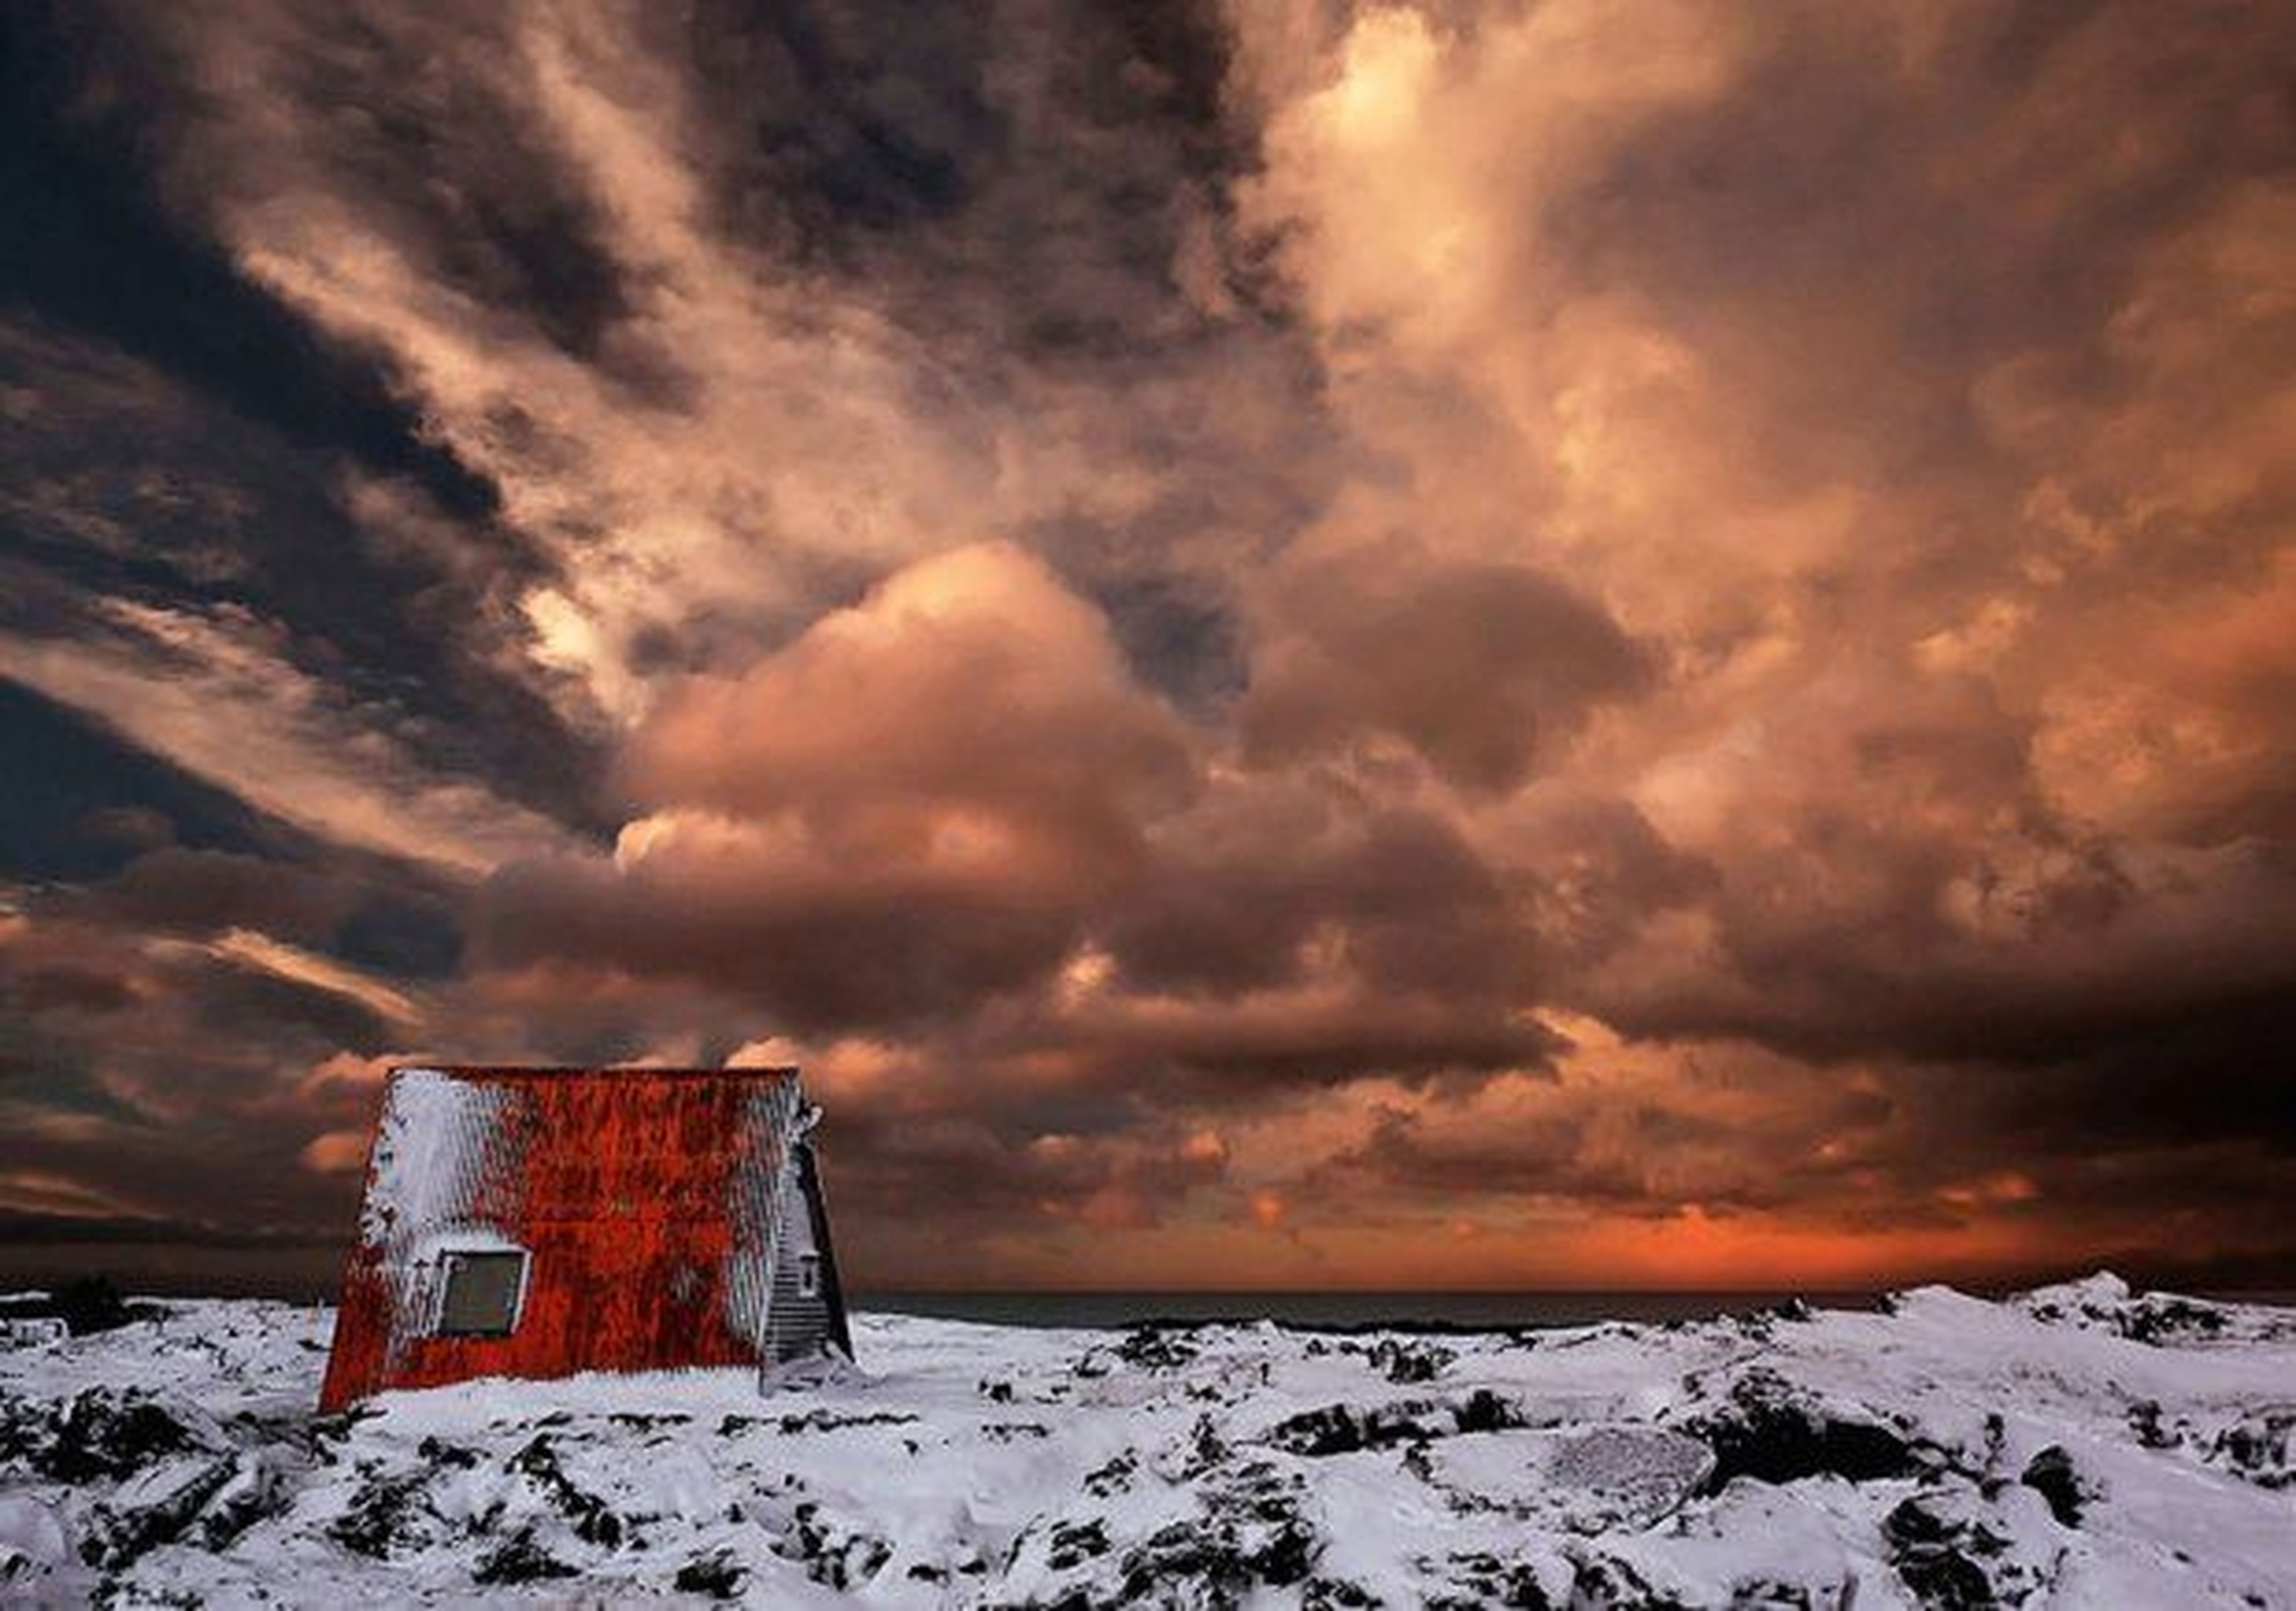 snow, winter, cold temperature, weather, season, sky, sunset, scenics, cloud - sky, tranquility, tranquil scene, covering, beauty in nature, landscape, nature, cloudy, frozen, orange color, dramatic sky, idyllic